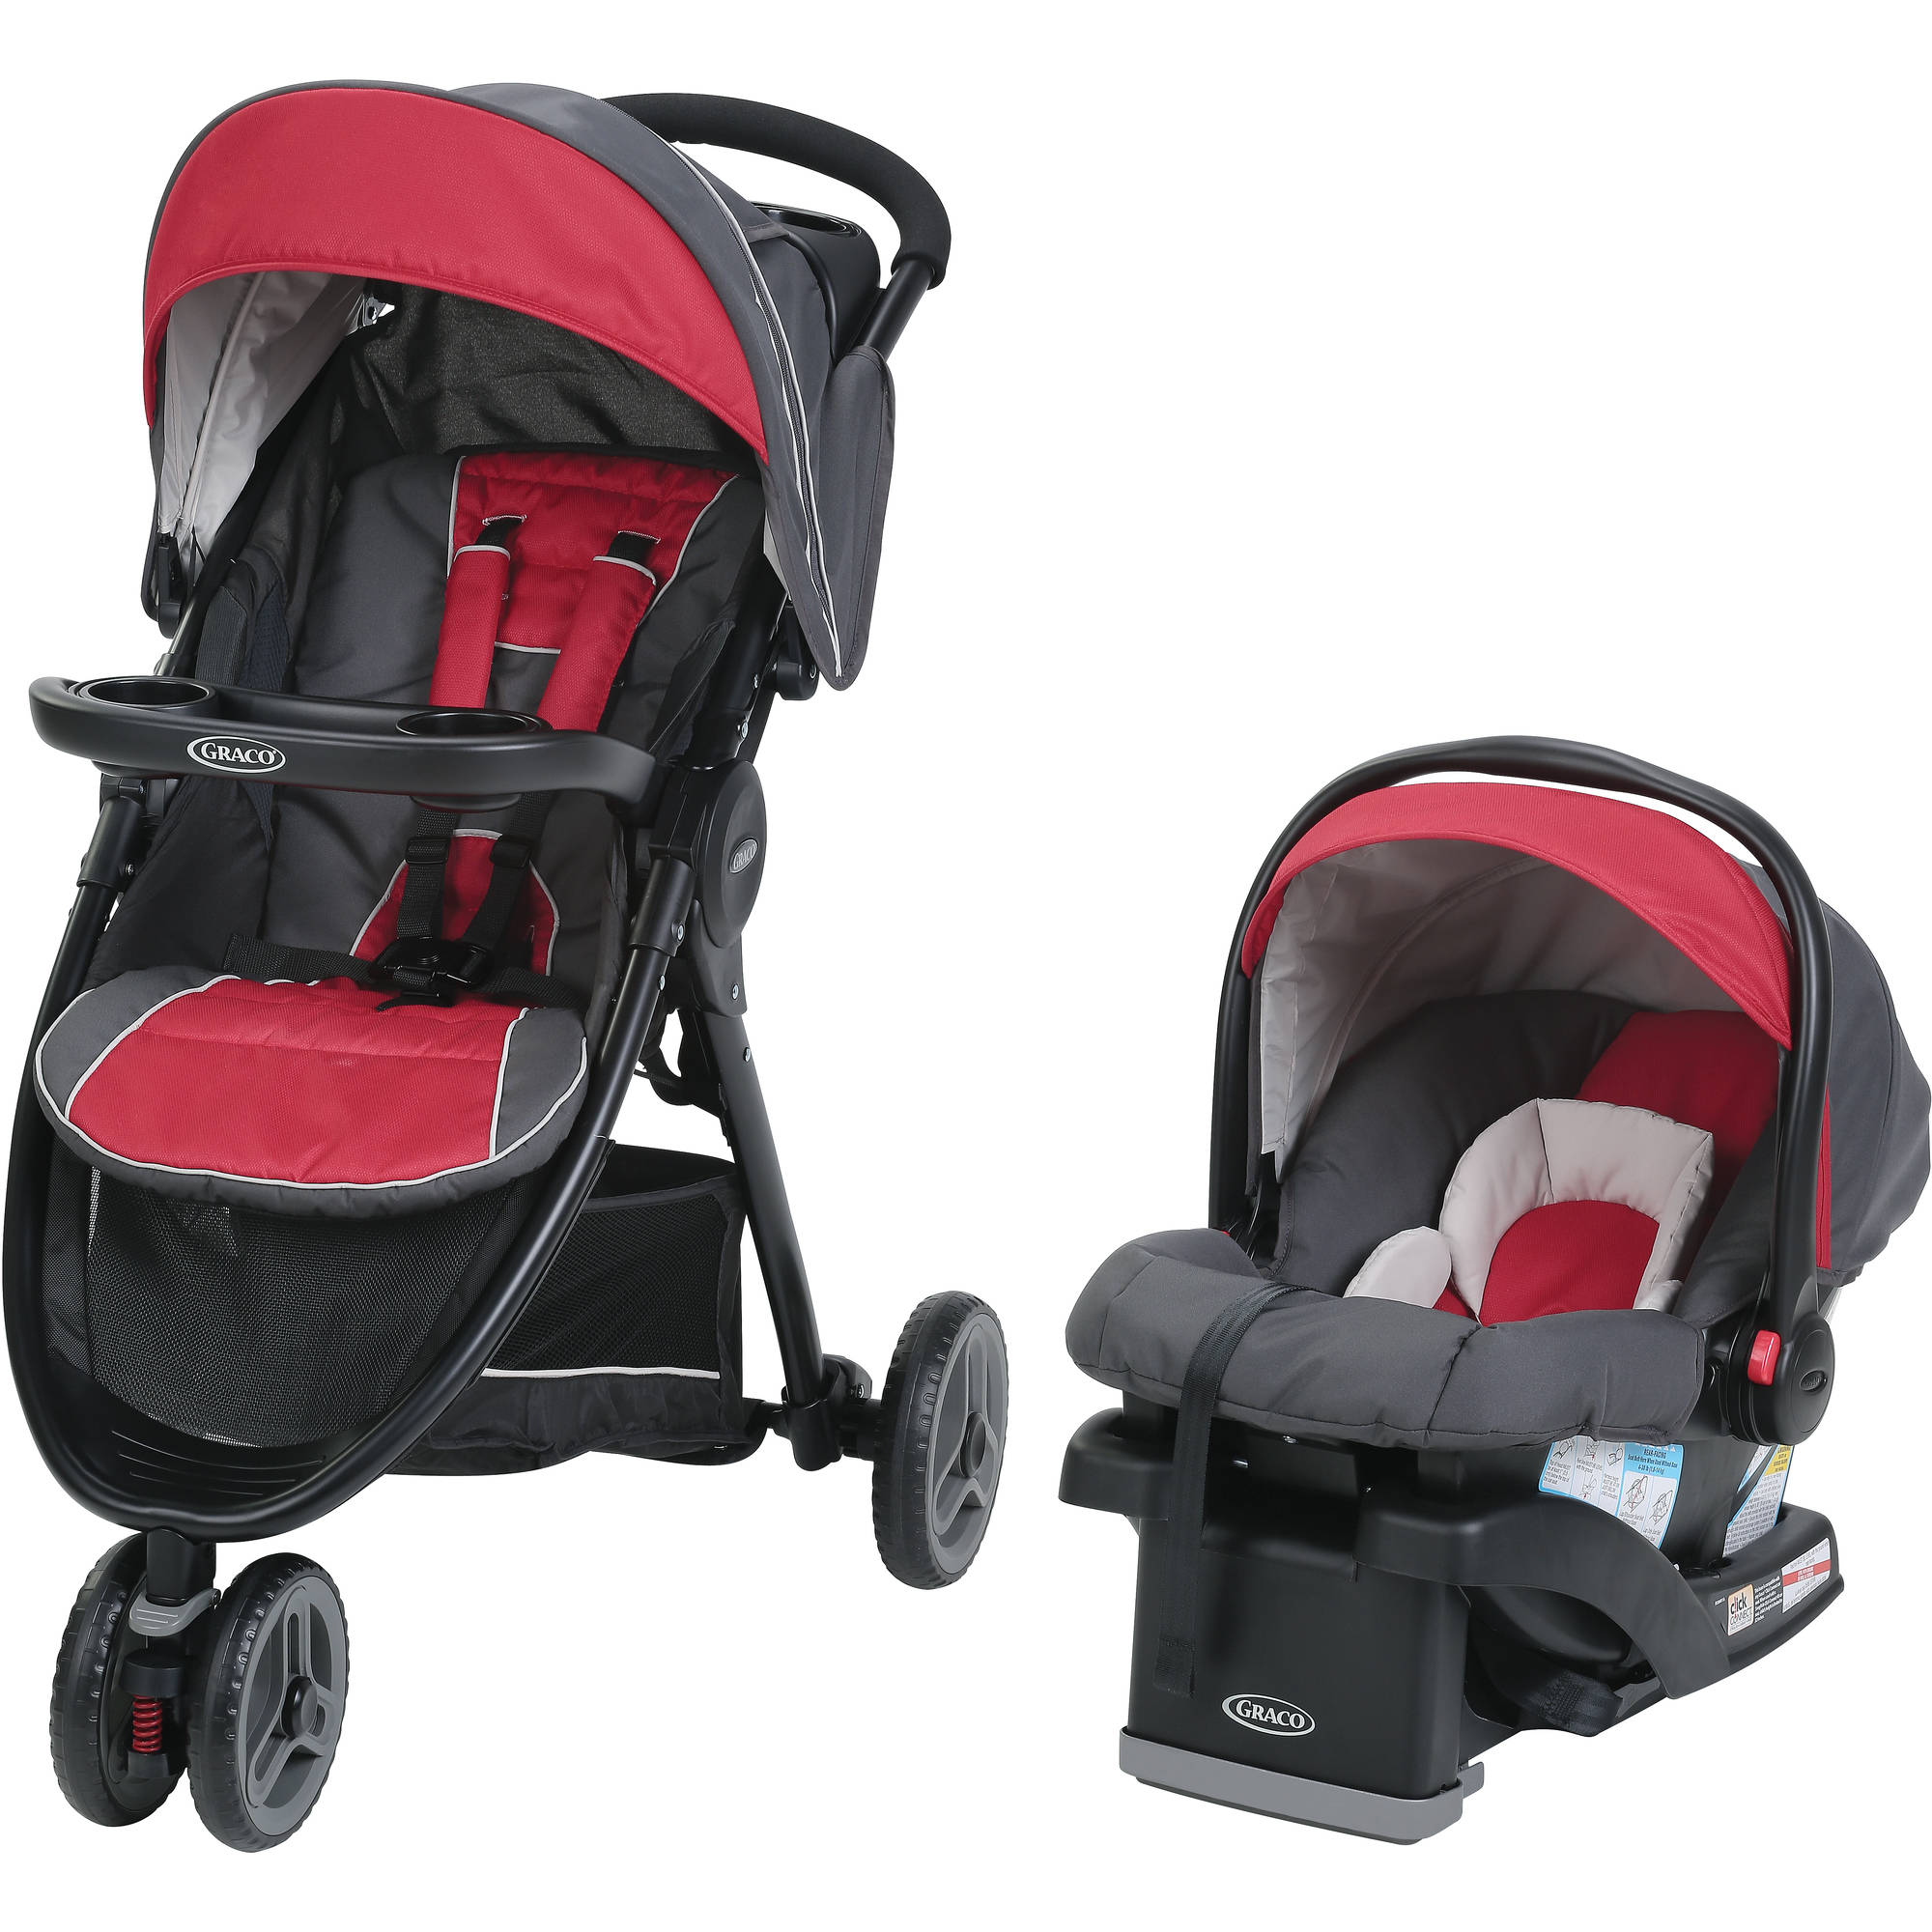 Graco Fastaction Sport Lx Travel System Car Seat Stroller Combo Chili Red Walmart Com